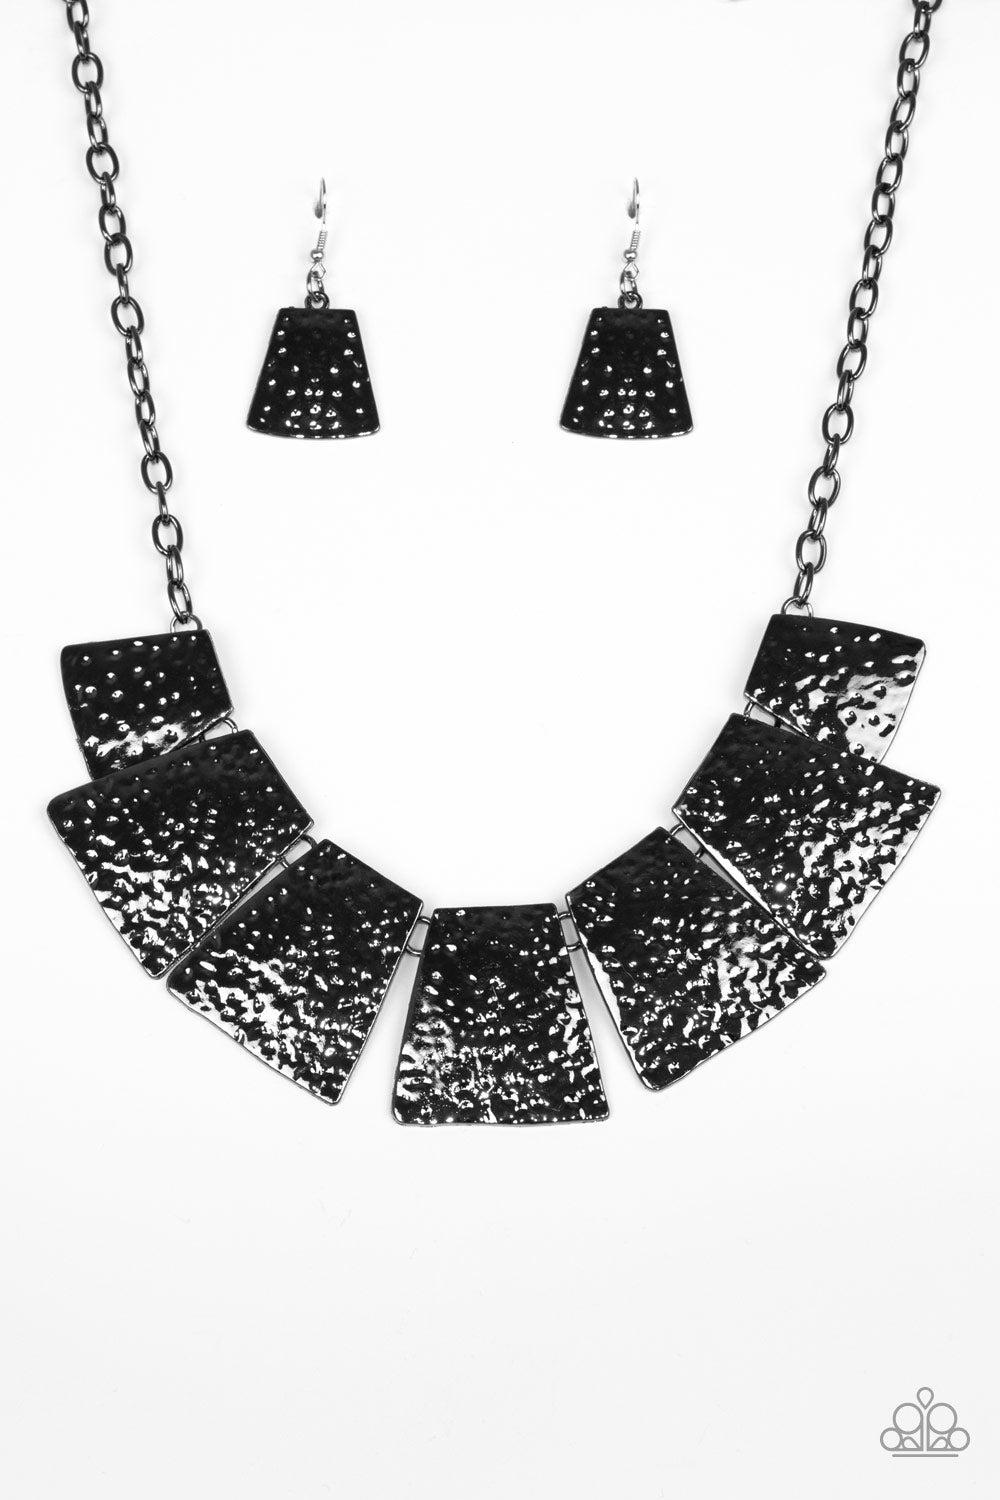 Here Comes The Huntress Black Hammered Necklace - Paparazzi Accessories Necklace set - Paparazzi Accessories